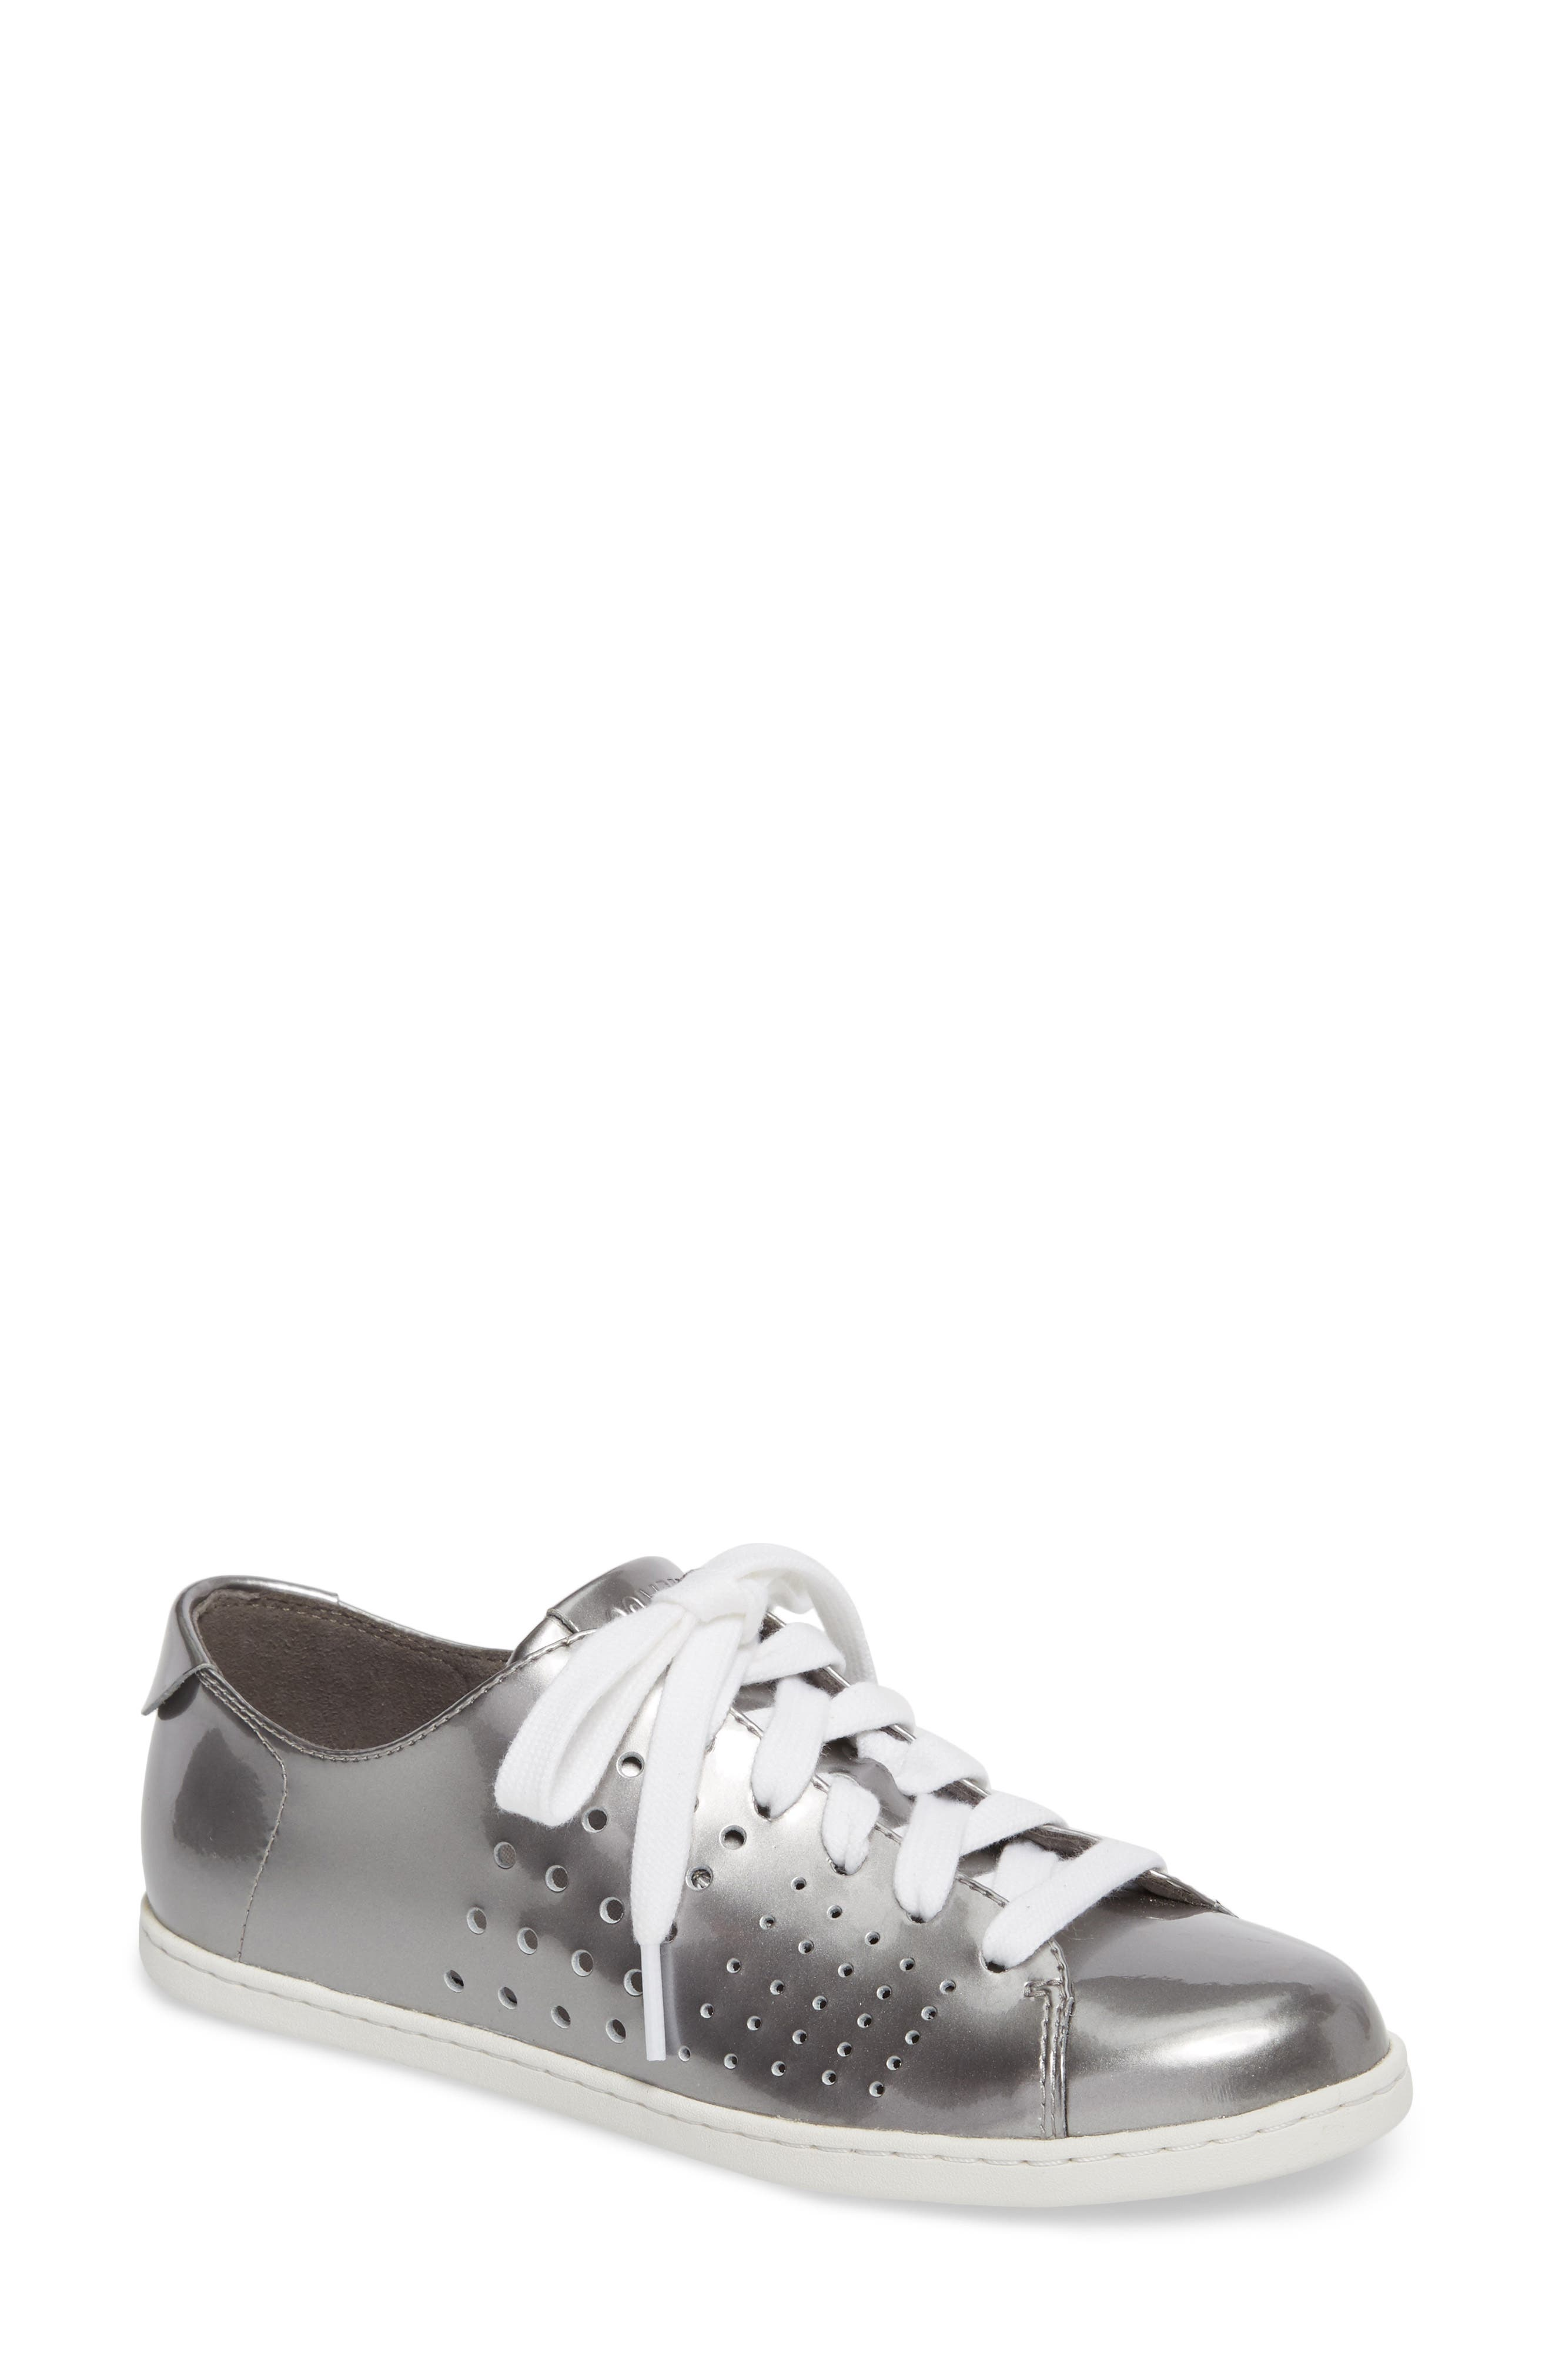 Twins Perforated Low Top Sneaker,                         Main,                         color, Medium Gray Leather